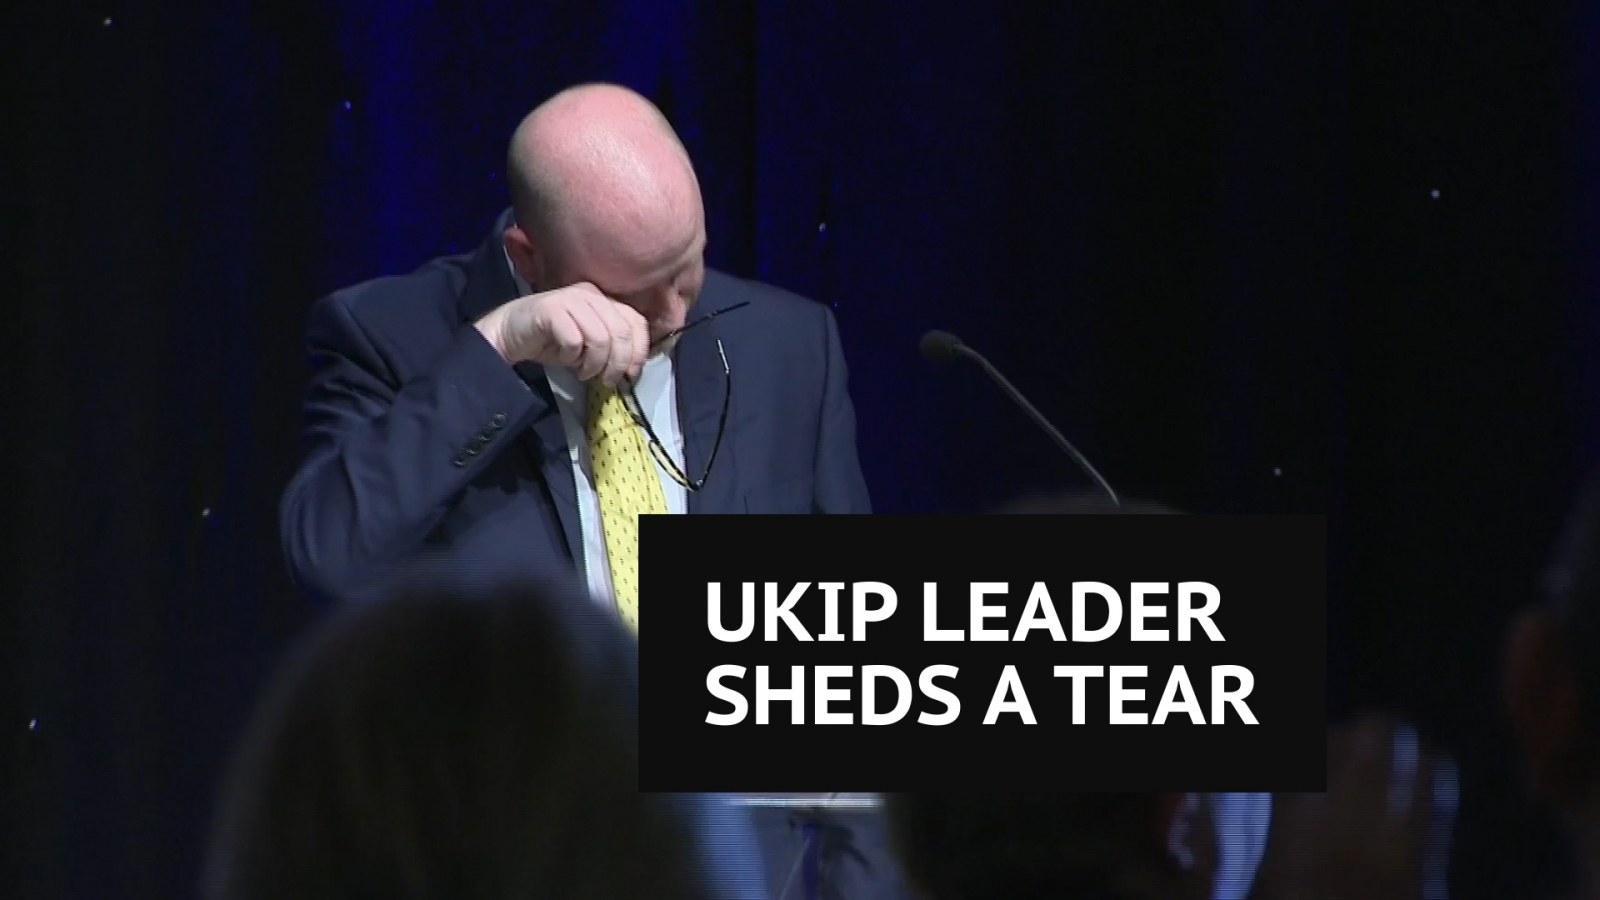 'I will not allow them to break Ukip' Paul Nuttall gets emotional during party conference speech